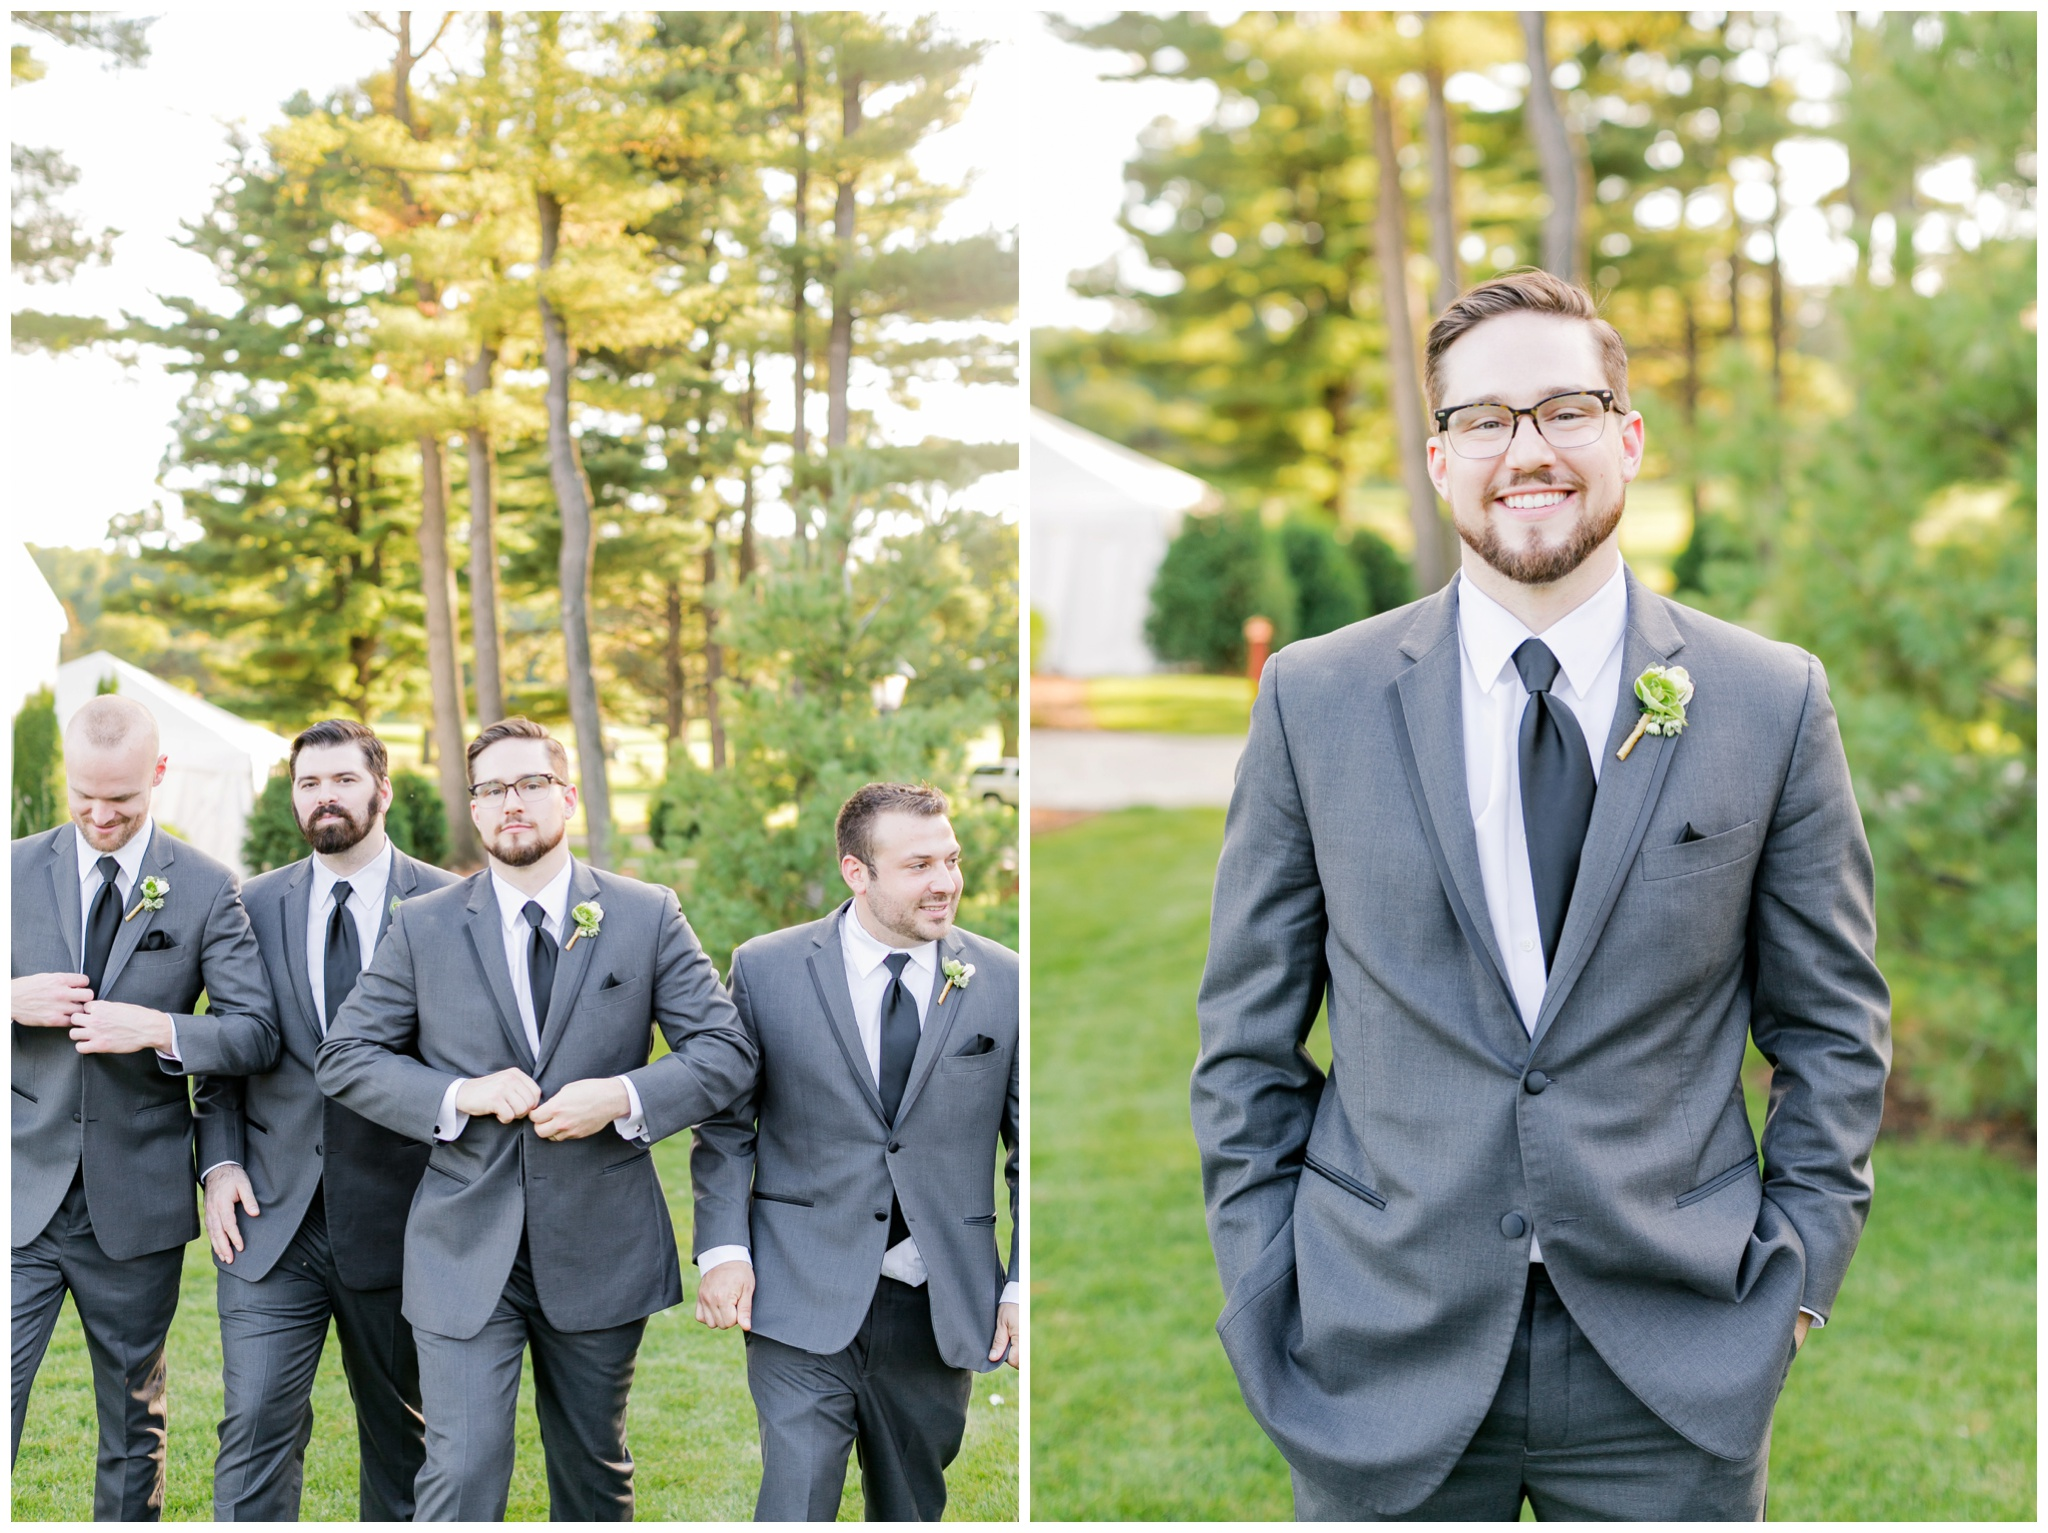 bishops_bay_country_club_wedding_middleton_wisconsin_caynay_photo_4722.jpg